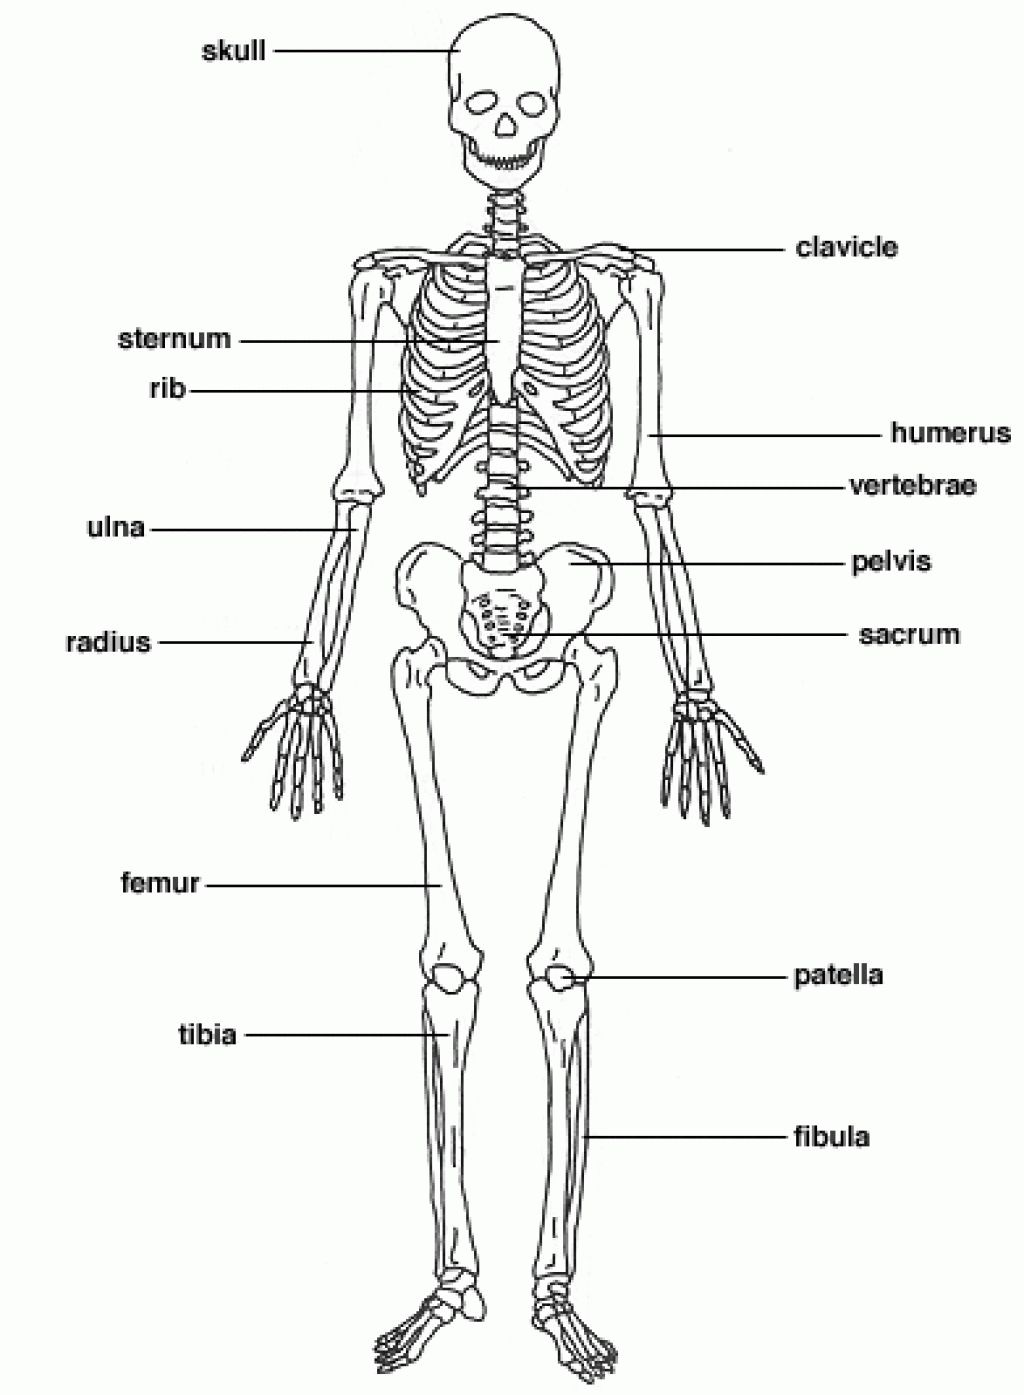 the skeletal system diagram labeled   the skeletal system diagram labeled  skeleton system diagrams labeled diagram